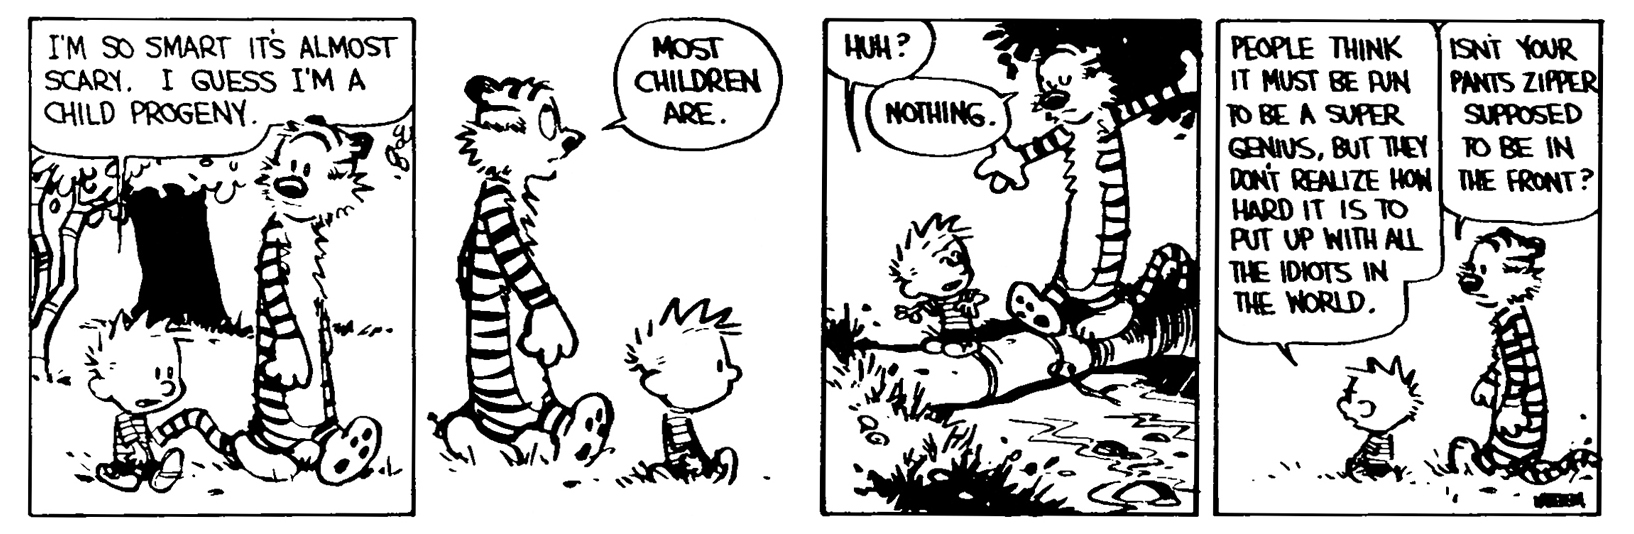 calvin-and-hobbes-quotes-zipper-in-front